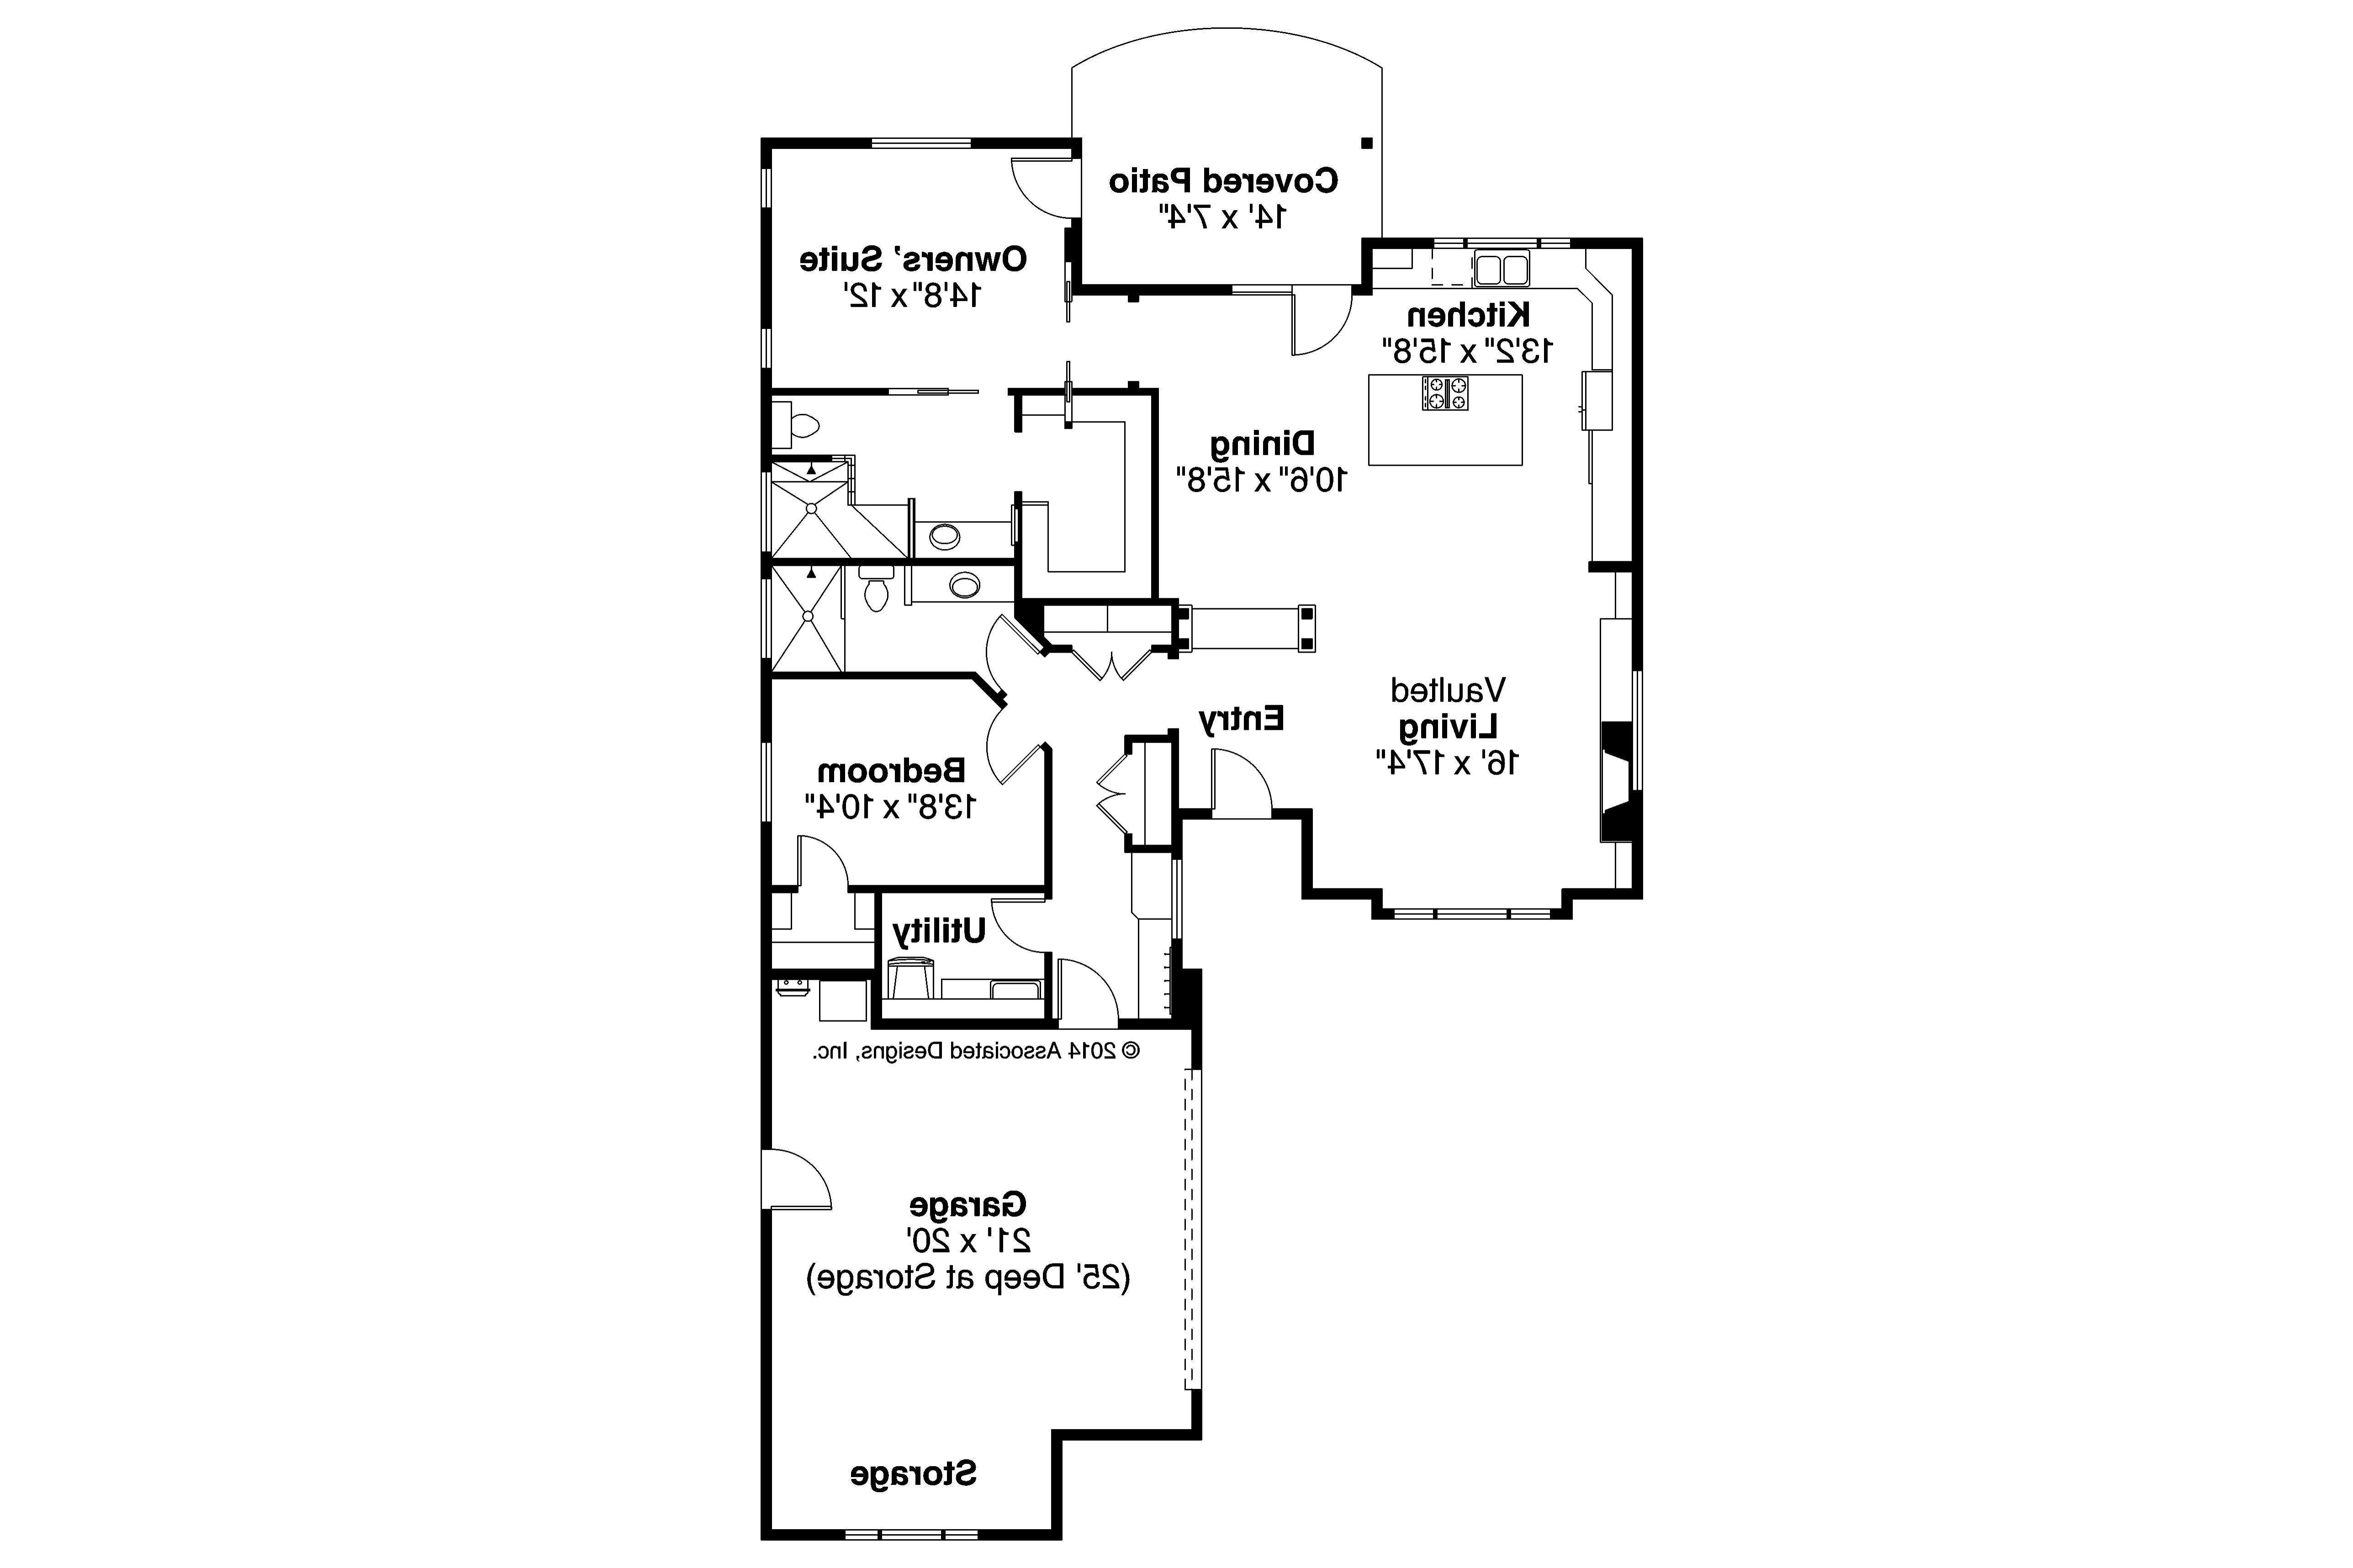 ranch house plans lostine 30 942 associated designs ranch house plan lostine 30 942 floor plan